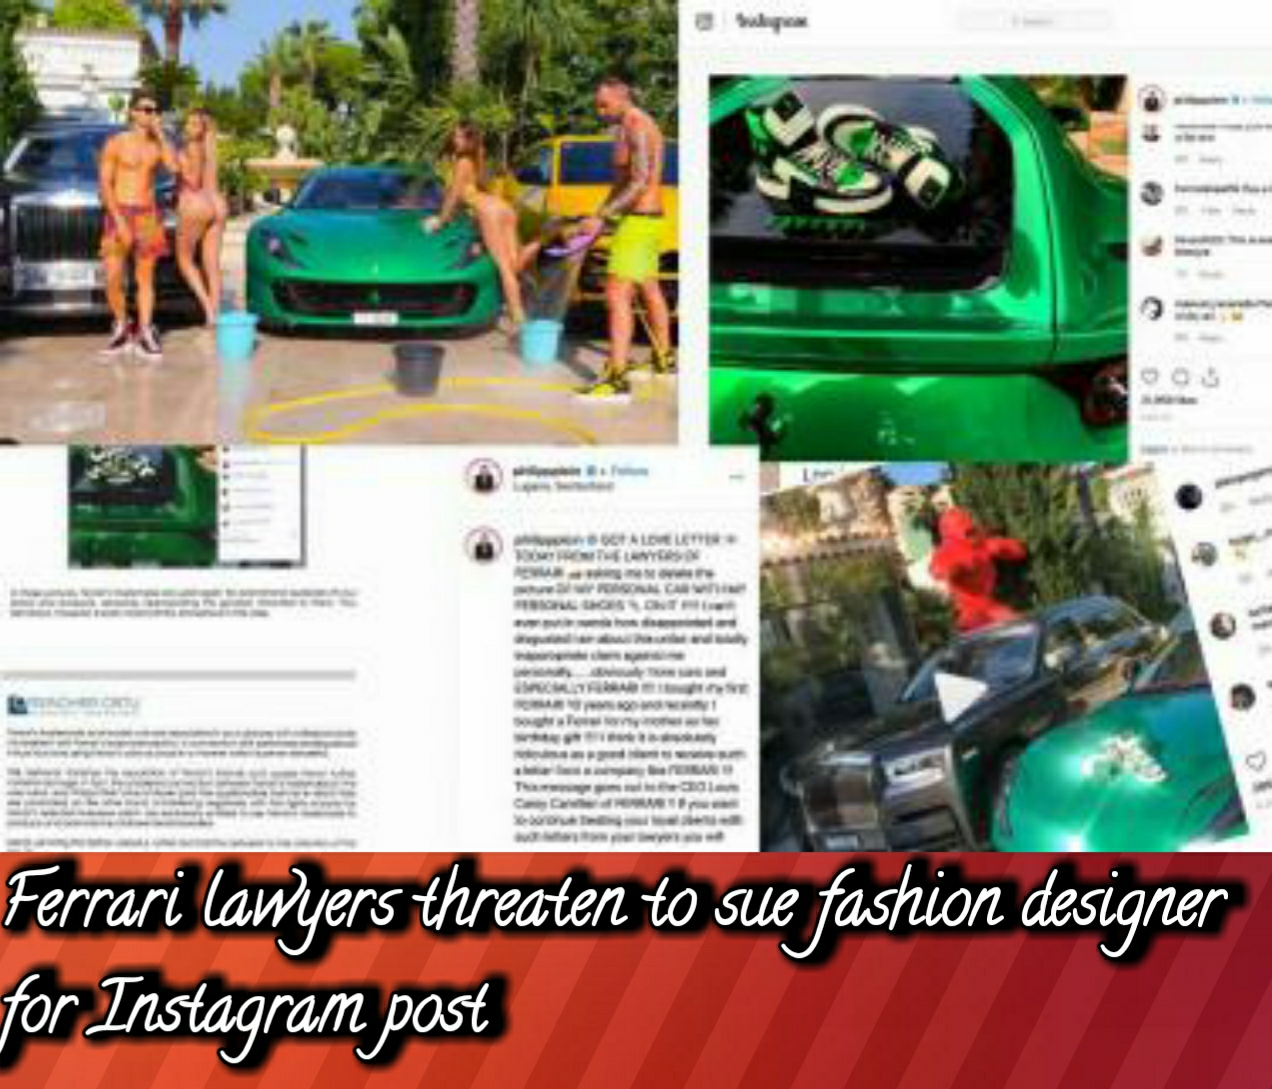 ferrari-lawyers-threaten-to-sue-fashion